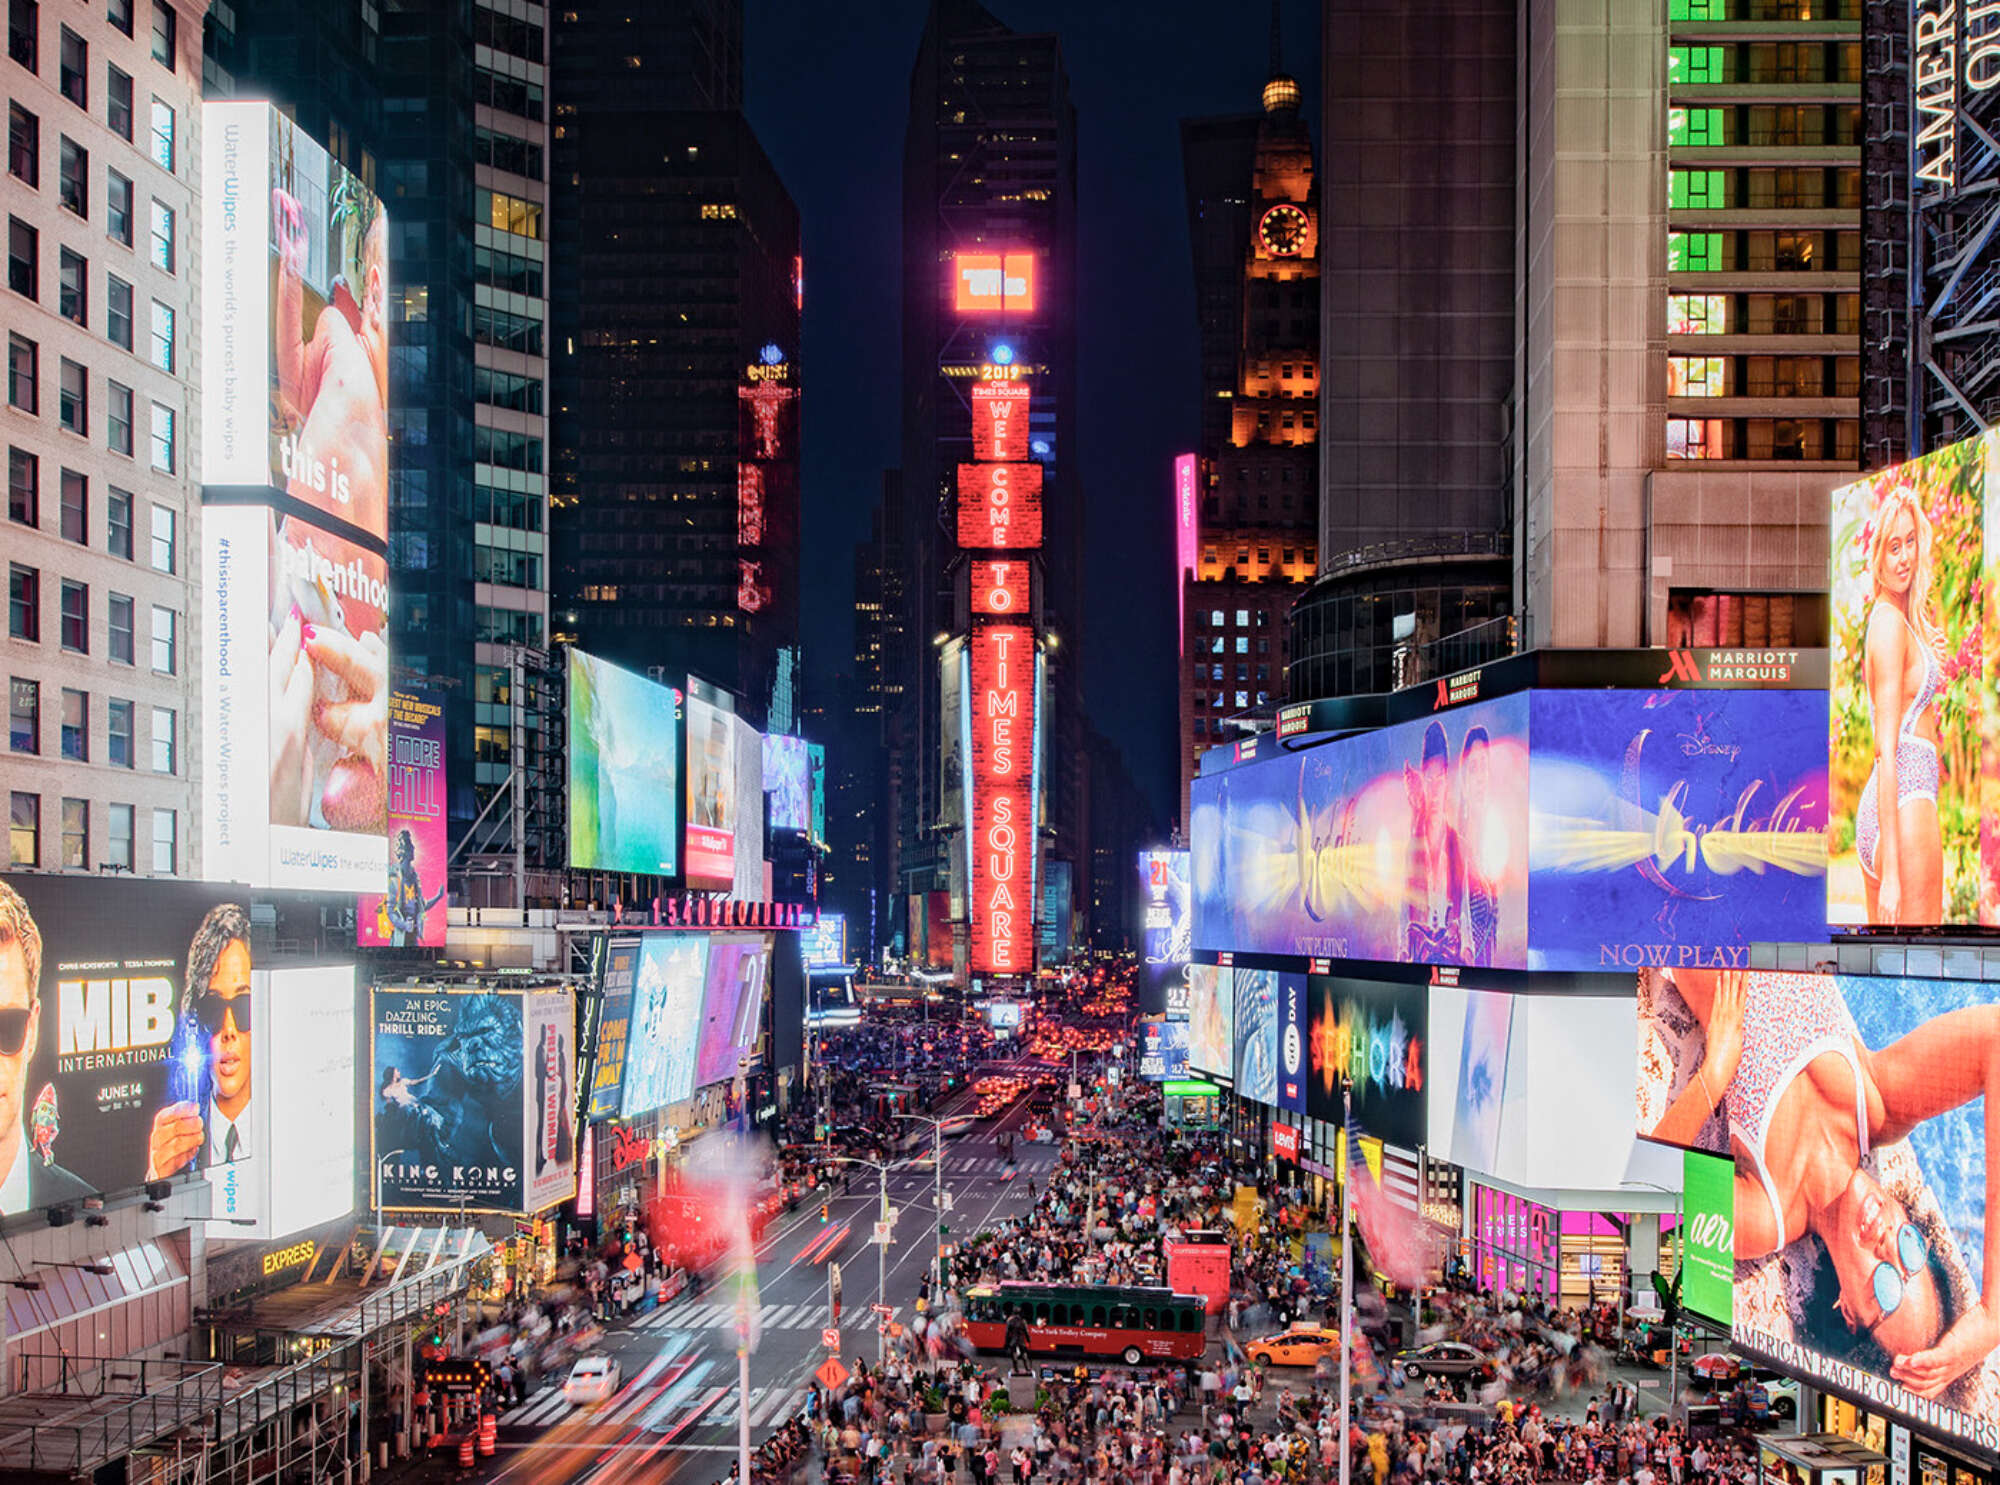 View across One Times Square from mid rise at night with throngs of pedestrians and dozens of illuminated billboards